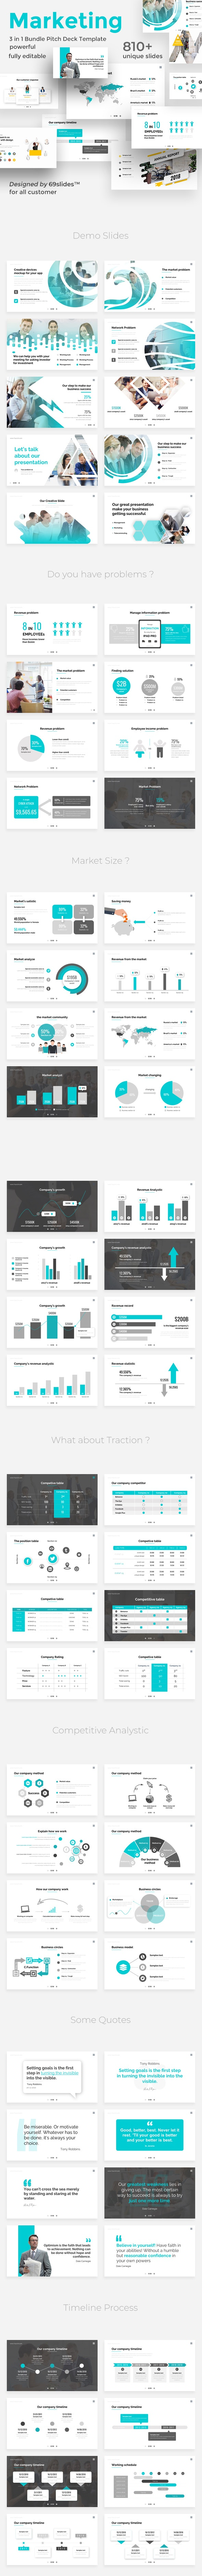 Marketing Assessment 3 in 1 Pitch Deck Bundle Powerpoint Template - Business PowerPoint Templates